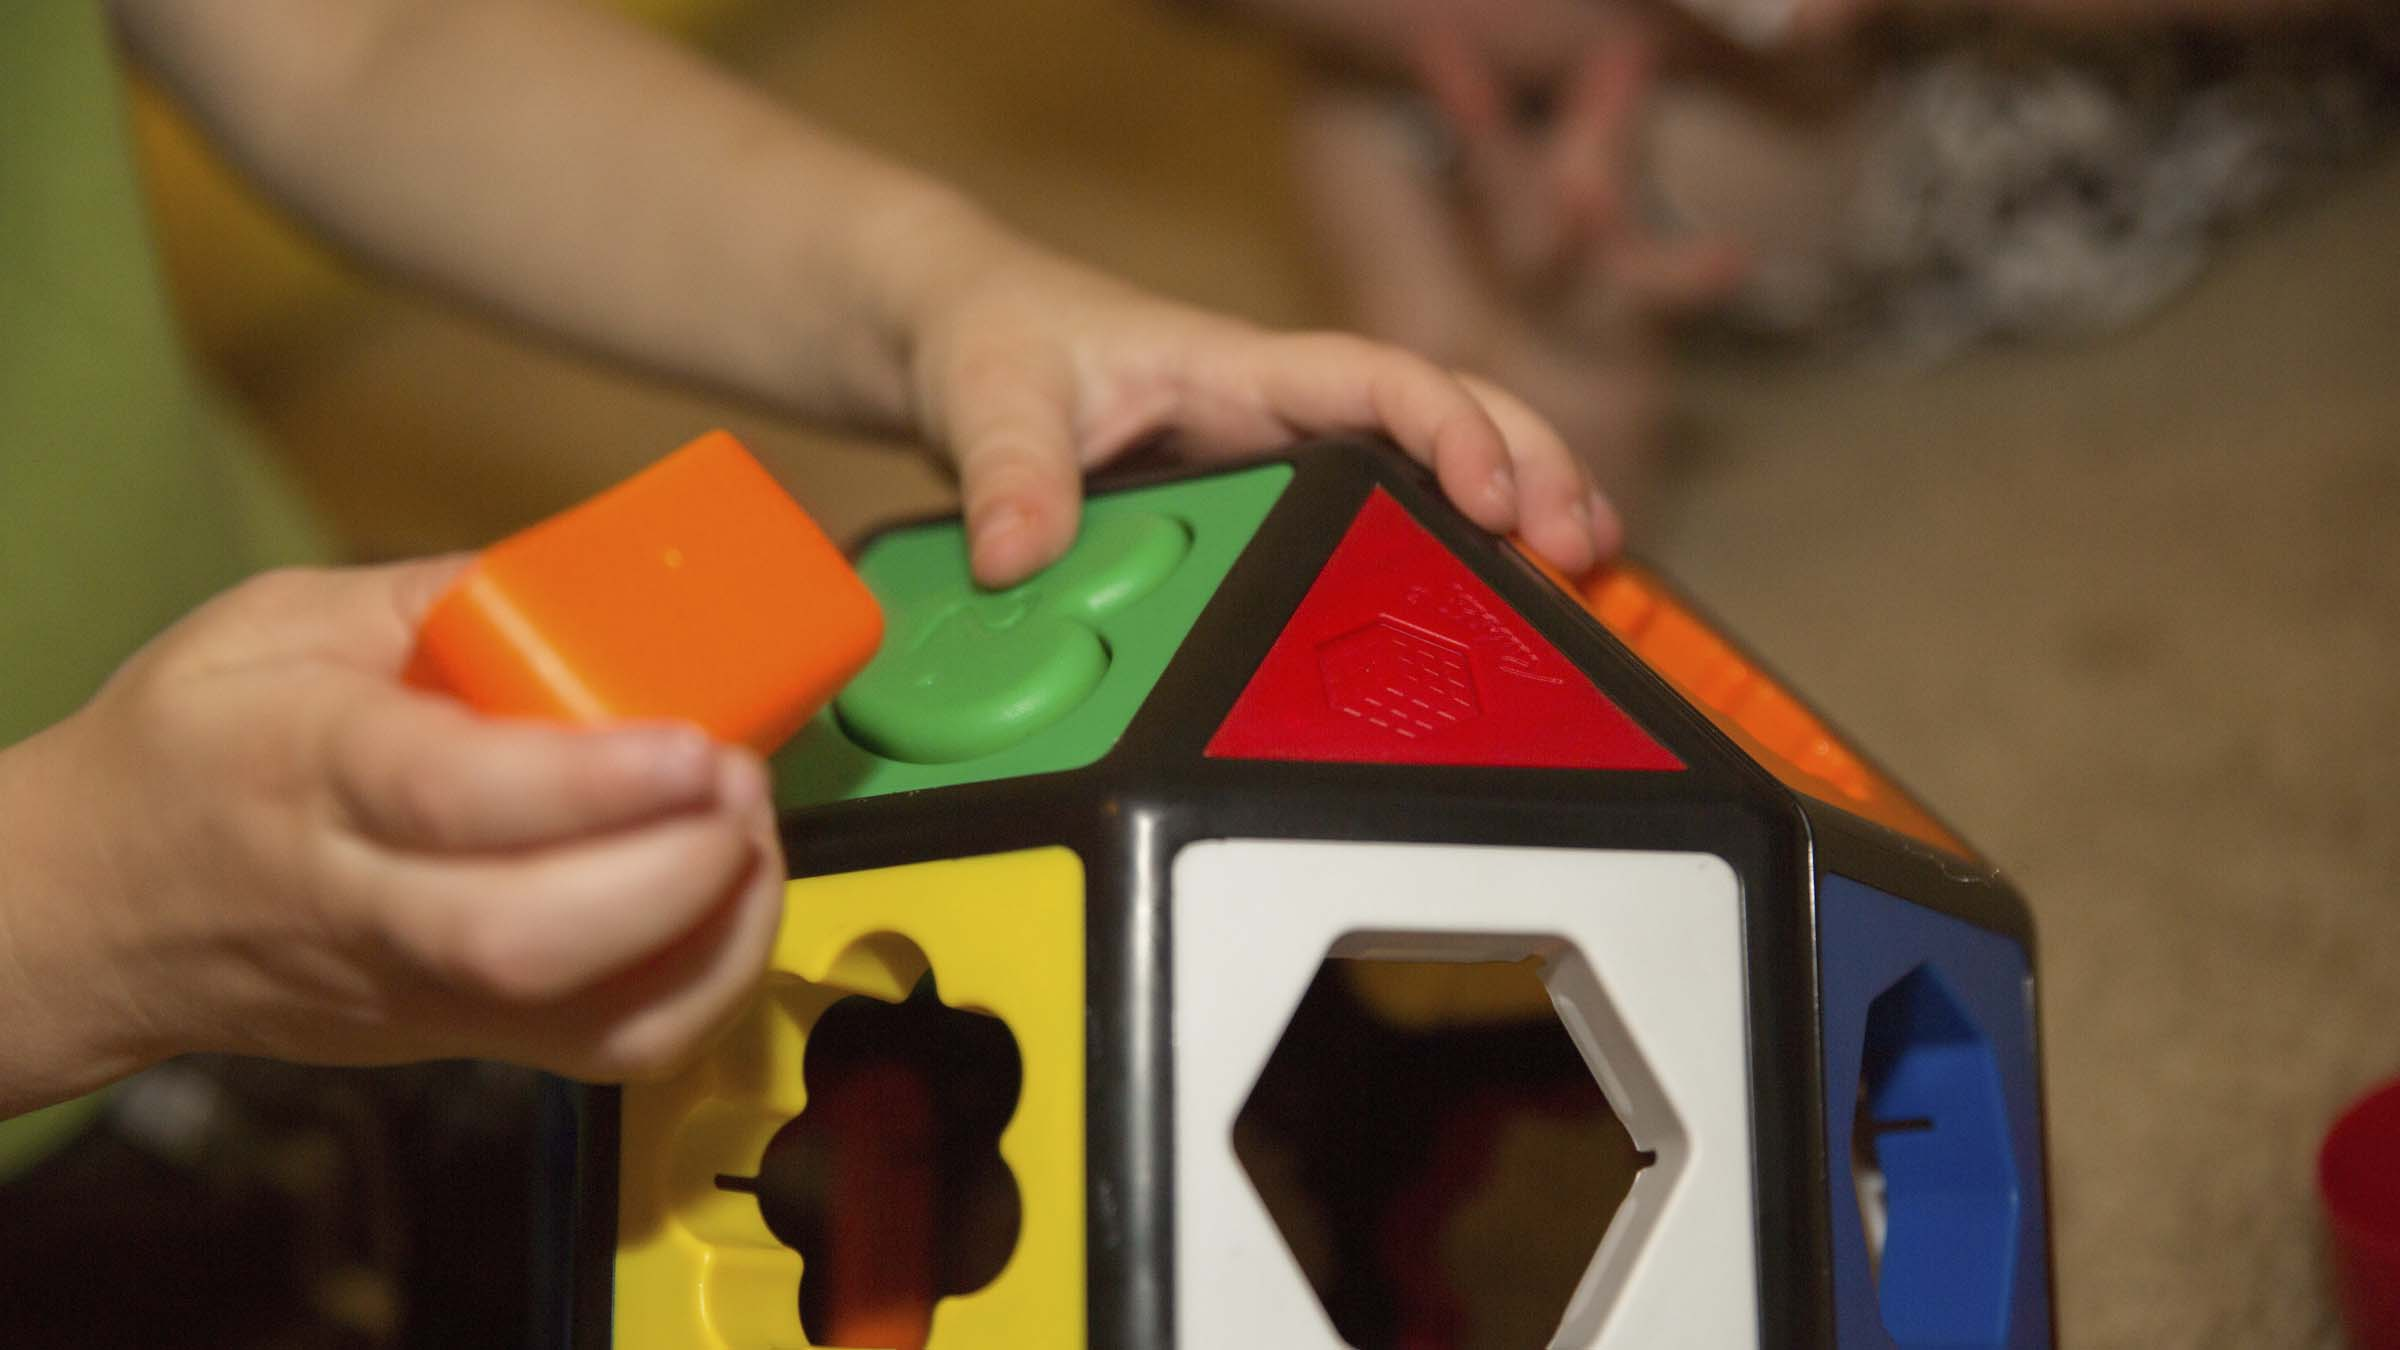 A child's hands playing with an educational toy